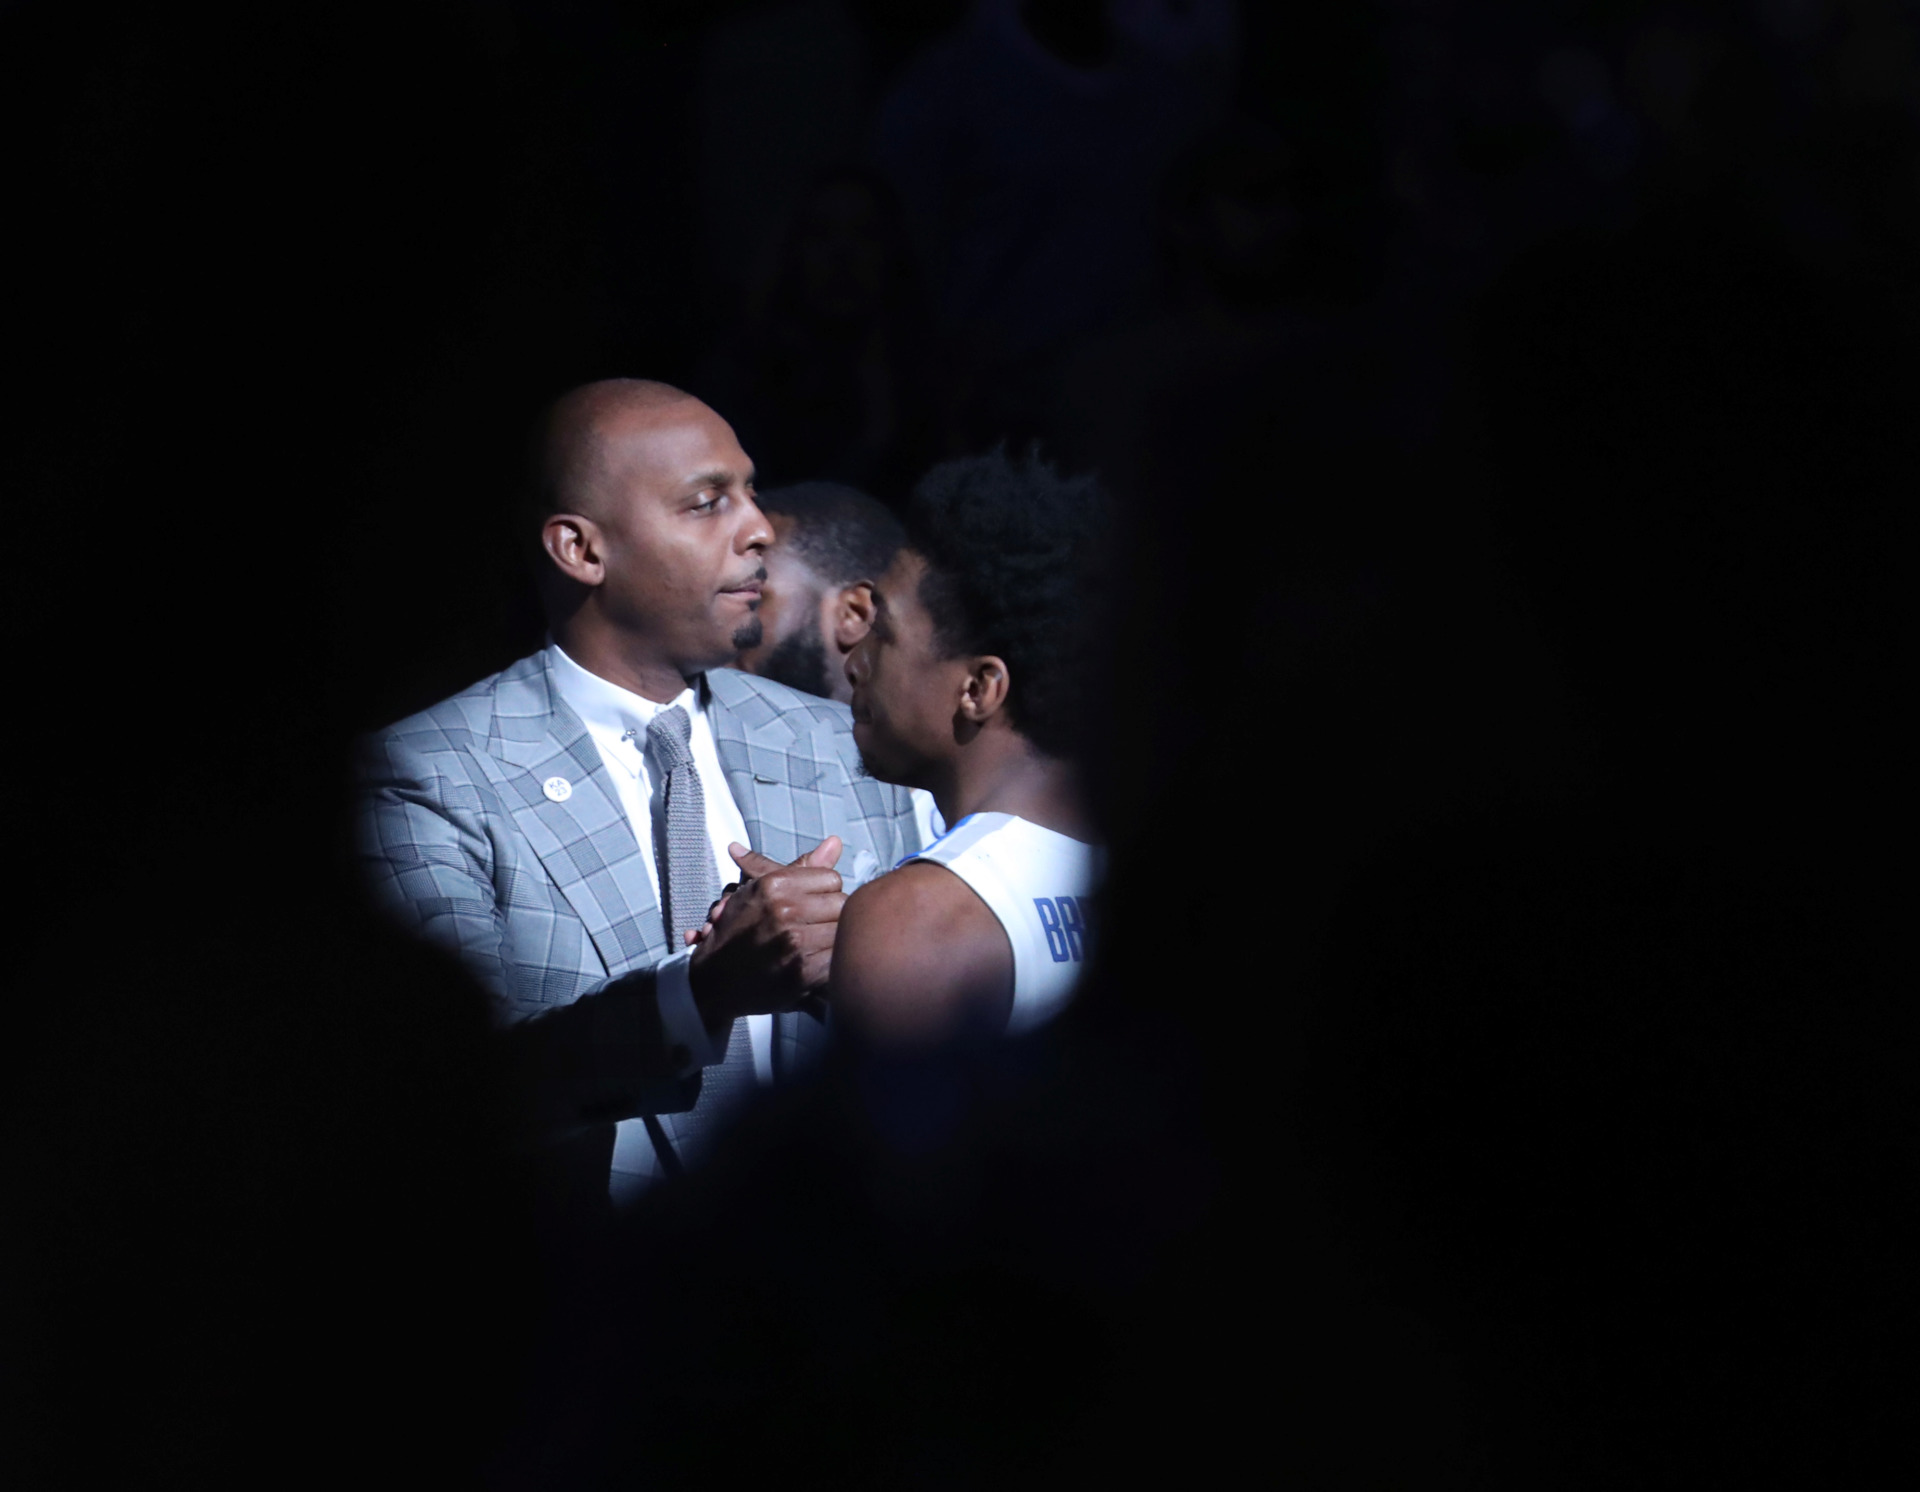 <strong>Memphis Tigers coach Penny Hardaway greets Kareem Brewton Jr. before the start of the game against Connecticut Huskies on Sunday, Feb. 10, at FedExForum. The Tigers went on to win, 78-71.</strong> (Karen Pulfer Focht/Special to the Daily Memphian)